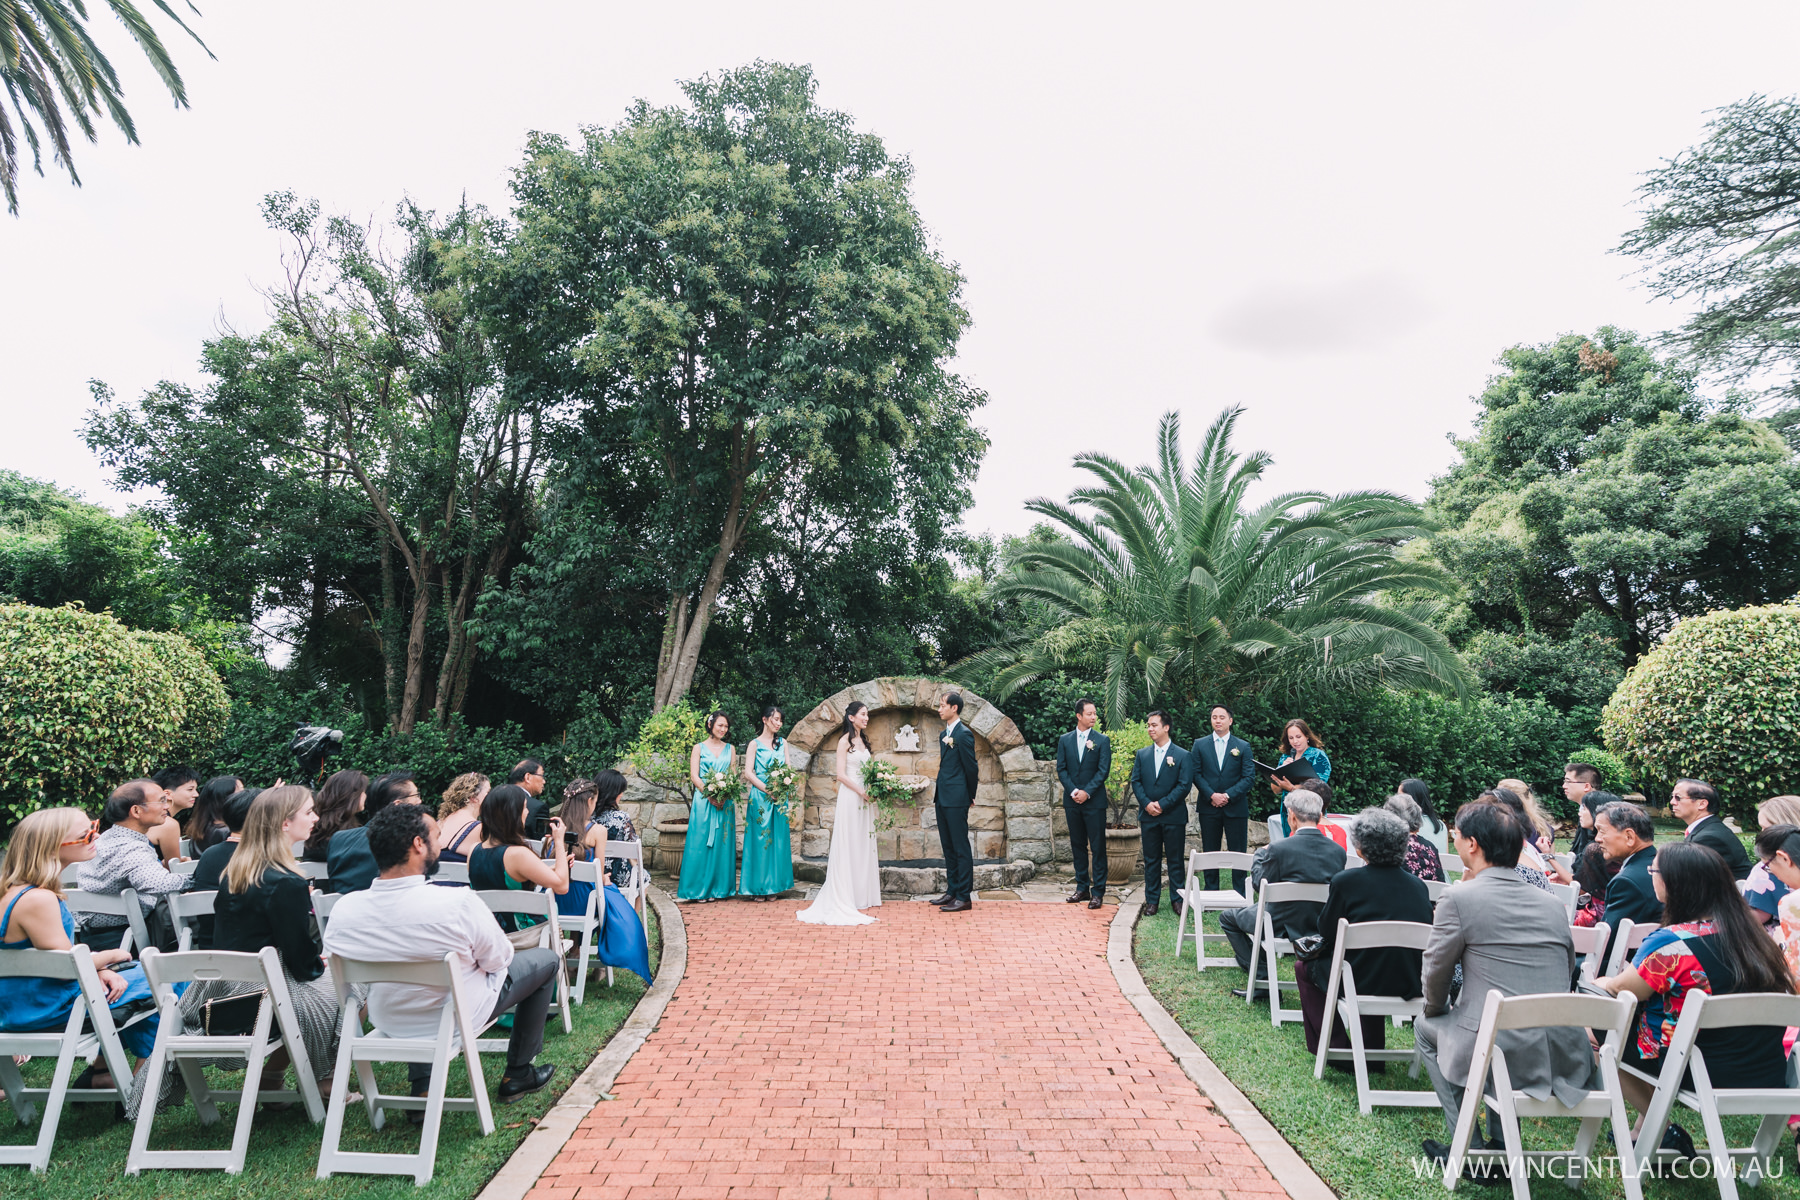 Enchanted Garden Wedding Ceremony at Oatlands House